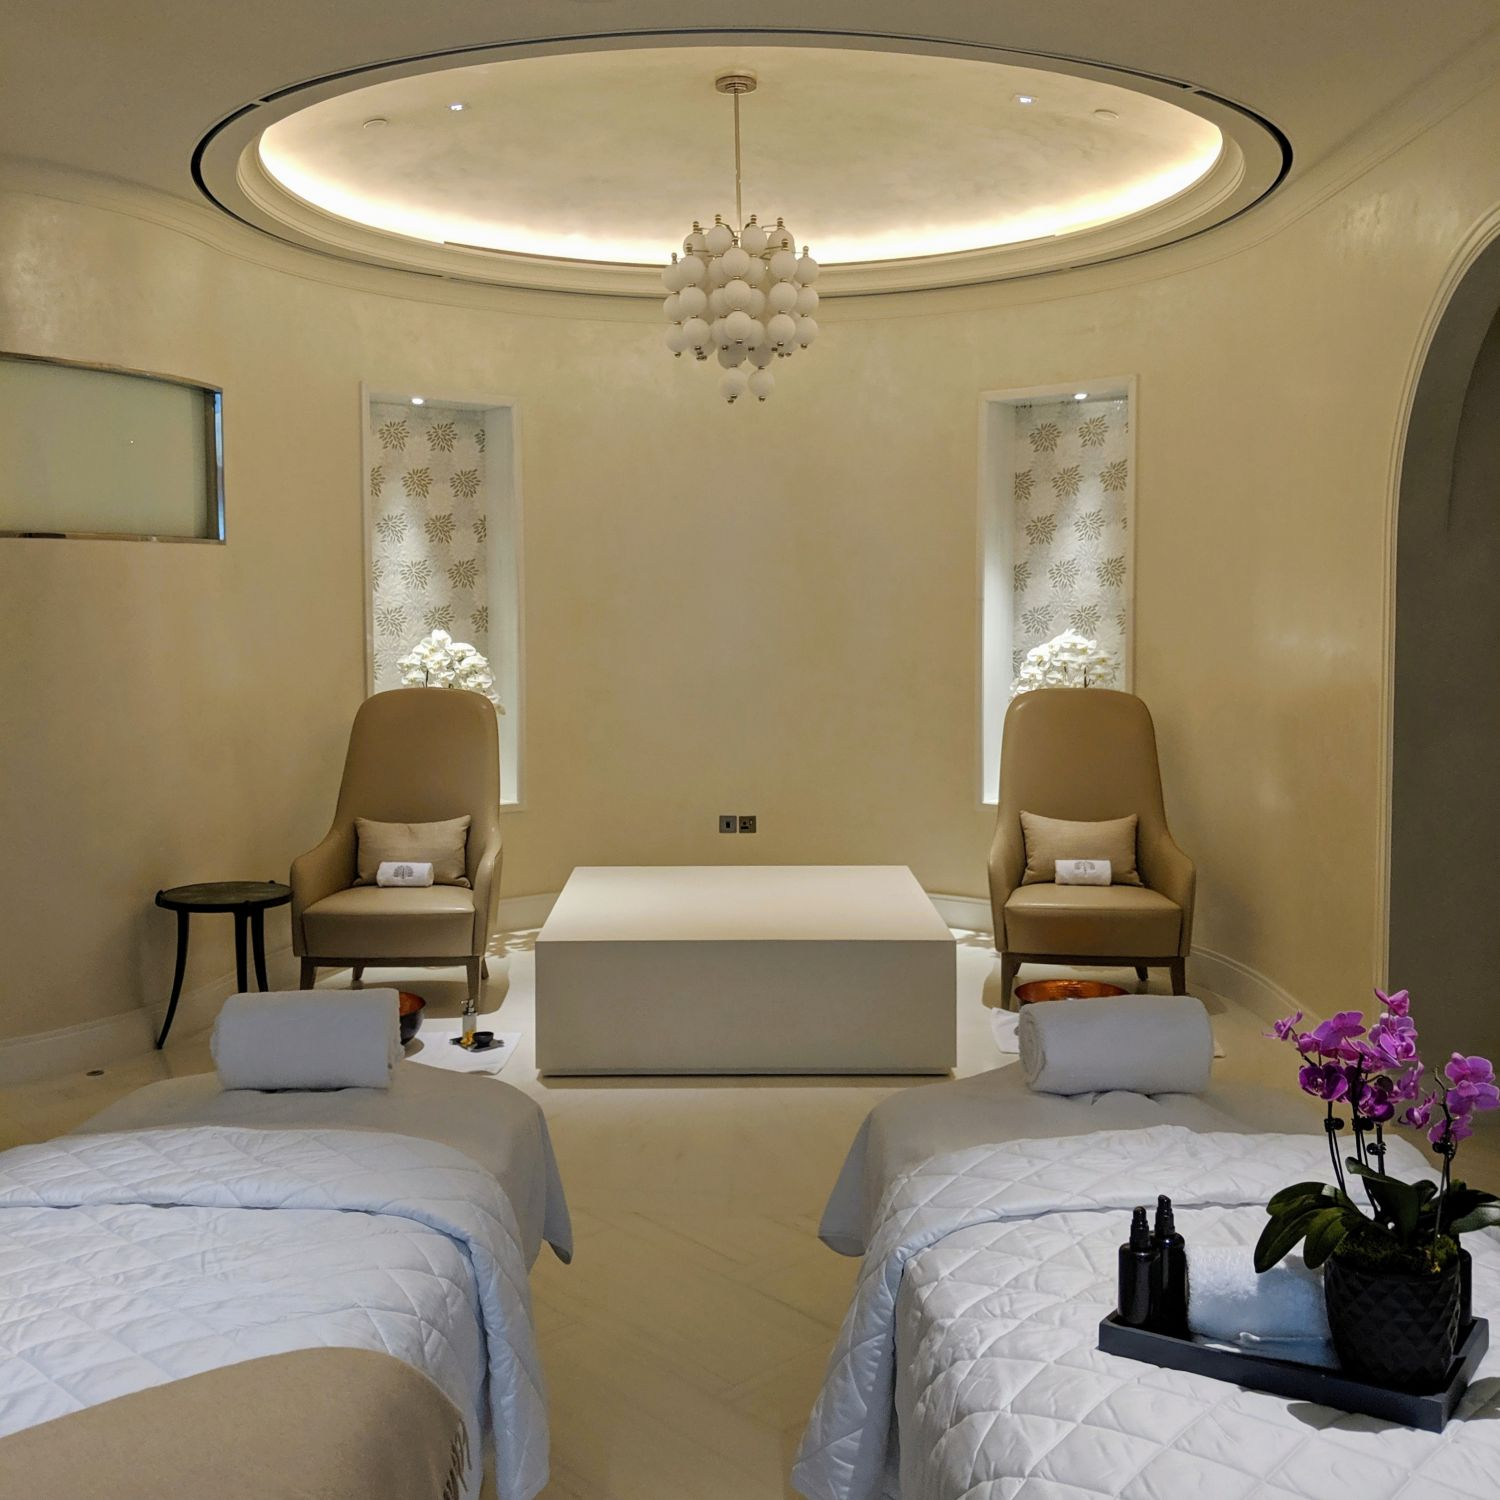 raffles hotel singapore raffles spa spa treatment room